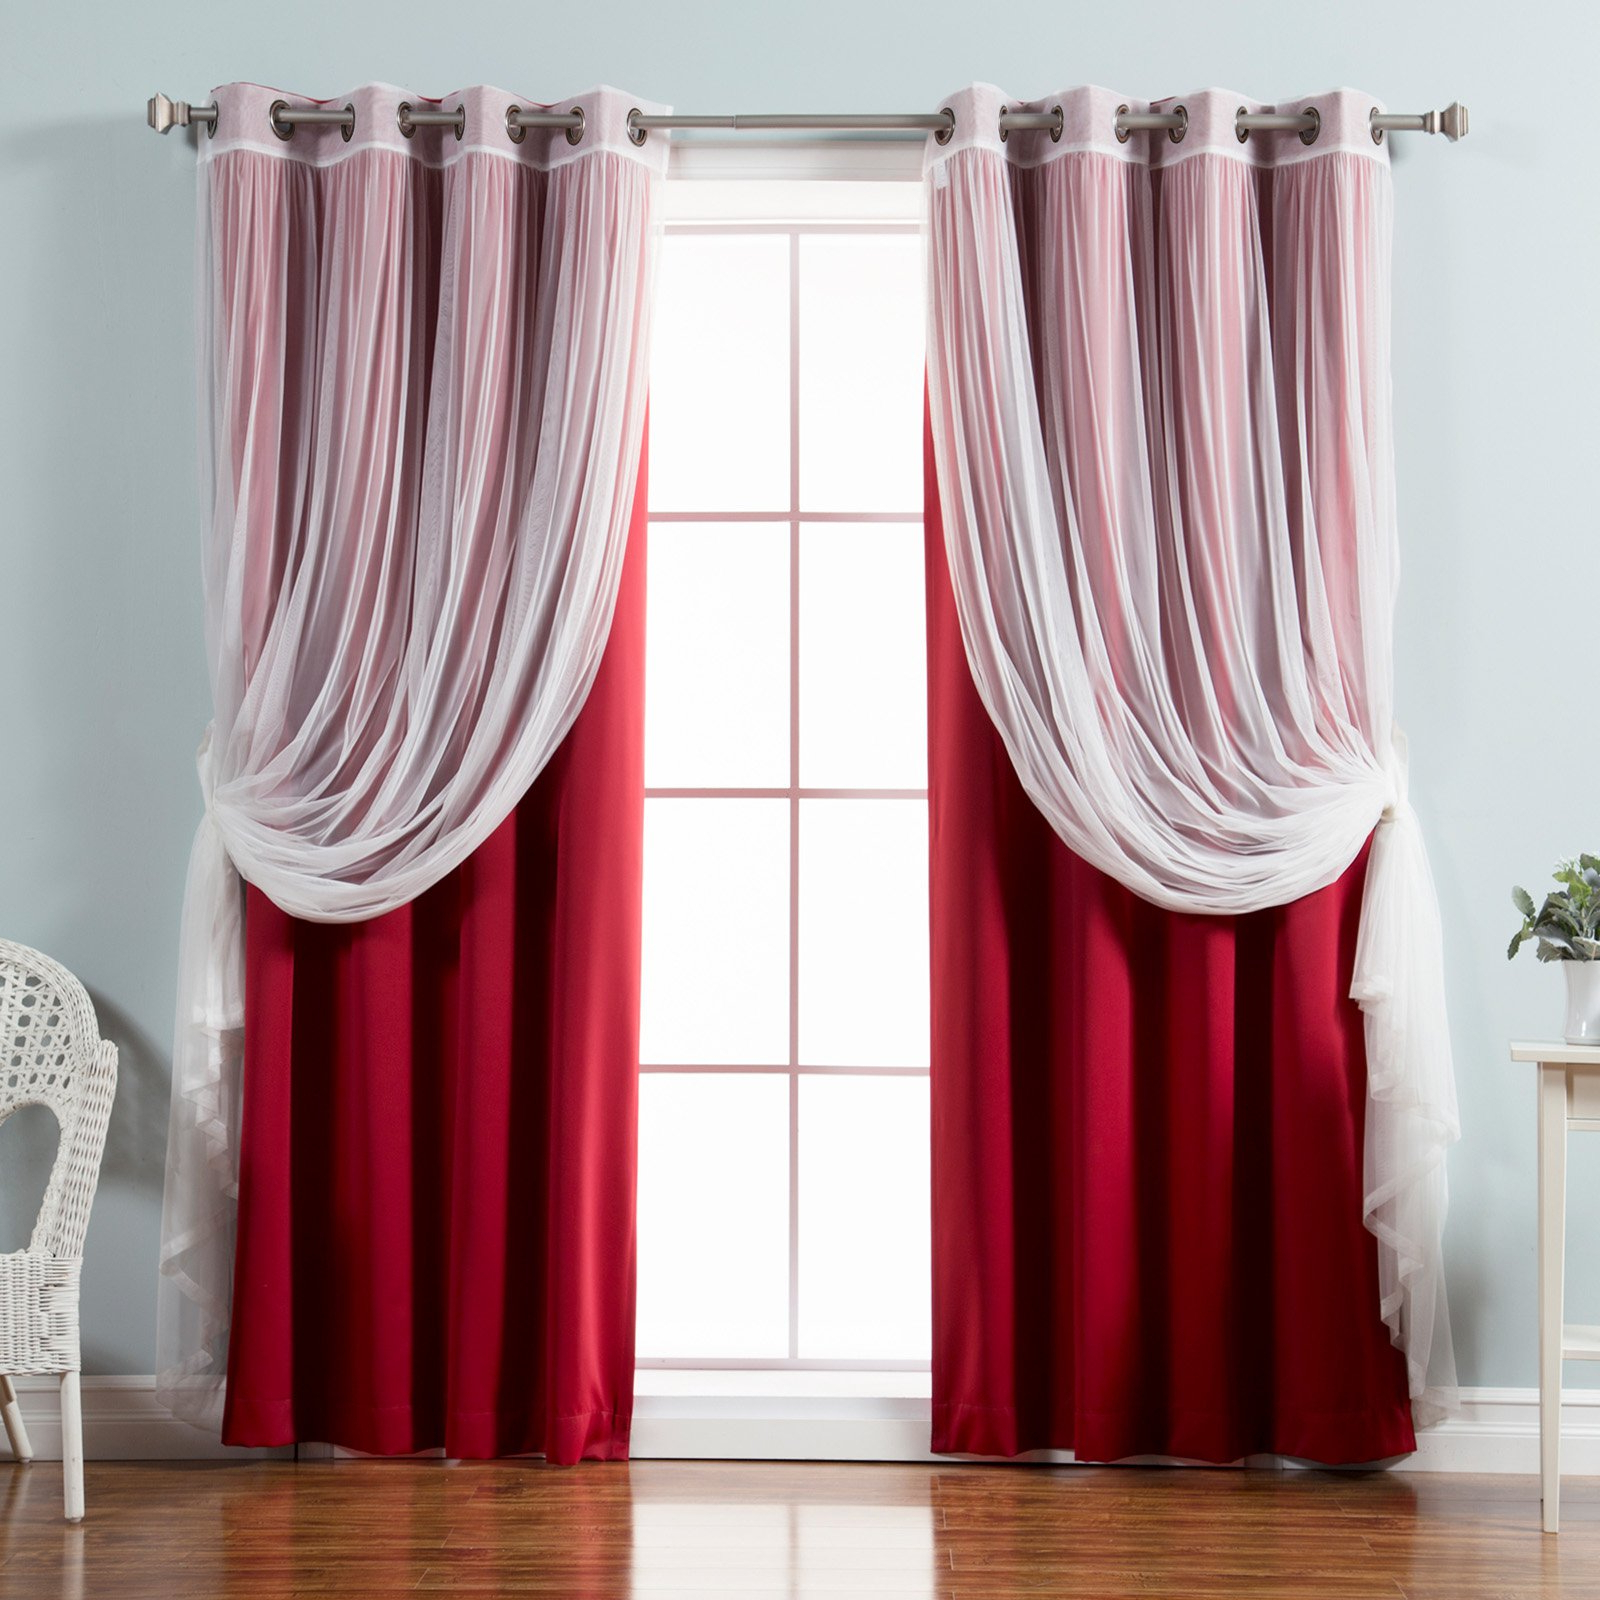 Mix & Match Blackout Tulle Lace Bronze Grommet Curtain Panel Sets Throughout Trendy Best Home Fashion Mix & Match Tulle Sheer Lace Blackout Curtain – Set Of (View 15 of 20)